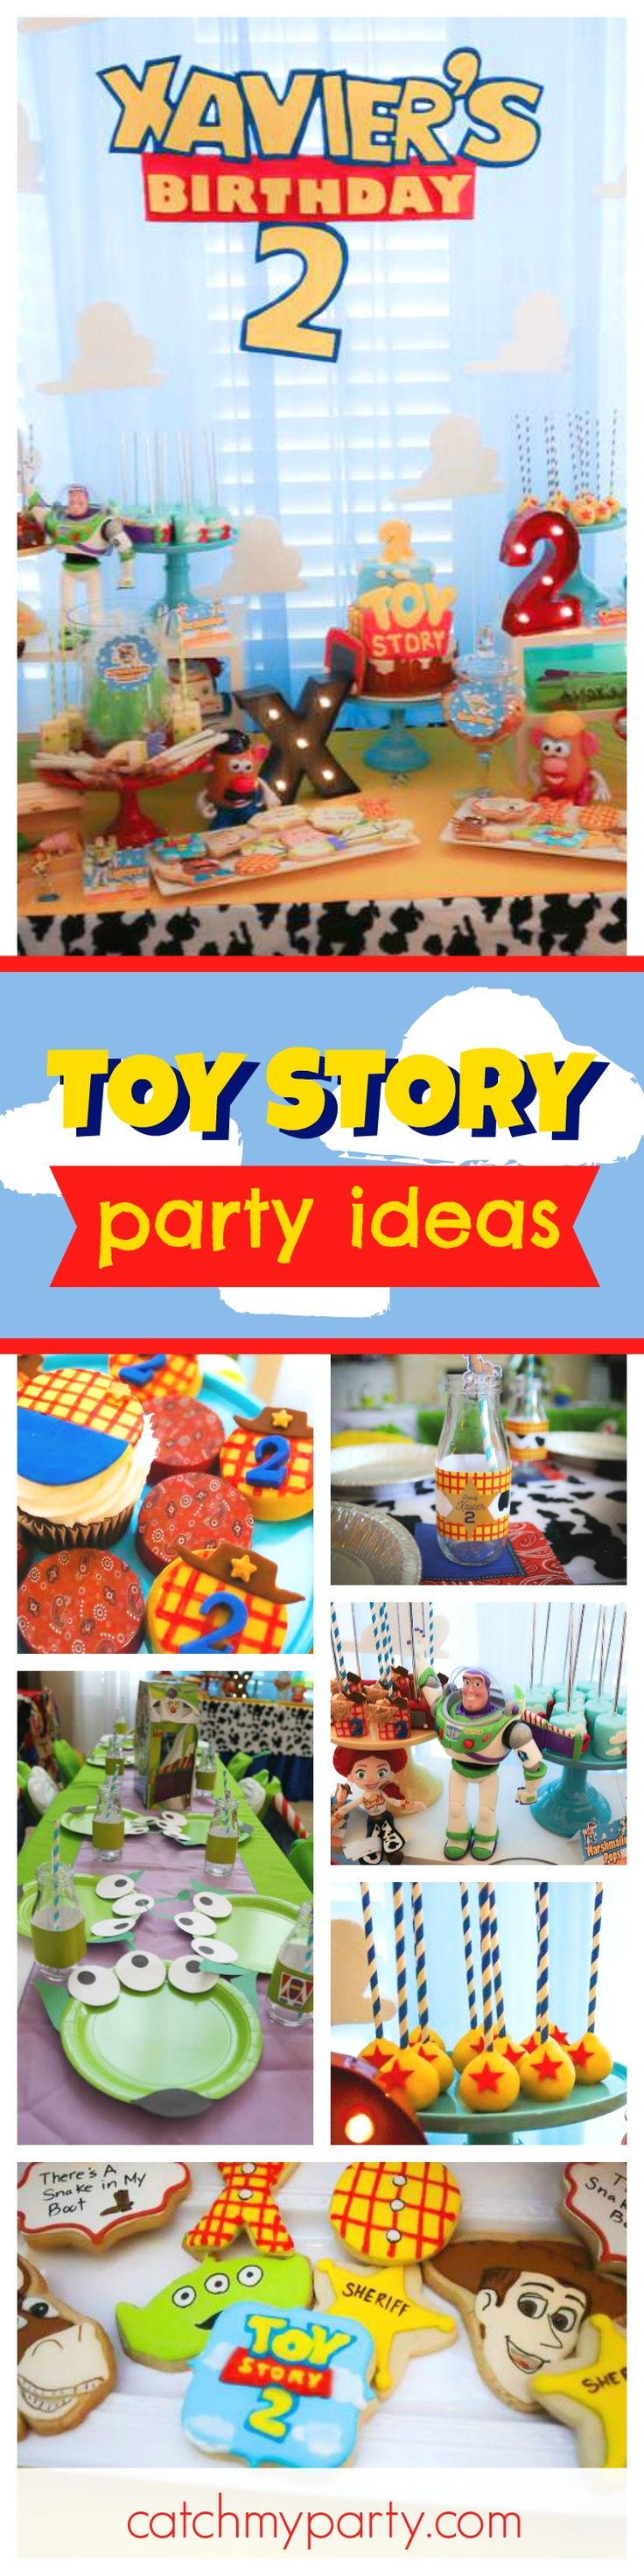 Toy story party ideas birthday in a box - Check Out This Awesome Toy Story Birthday Party The Cupcakes And Cookies Are So Much